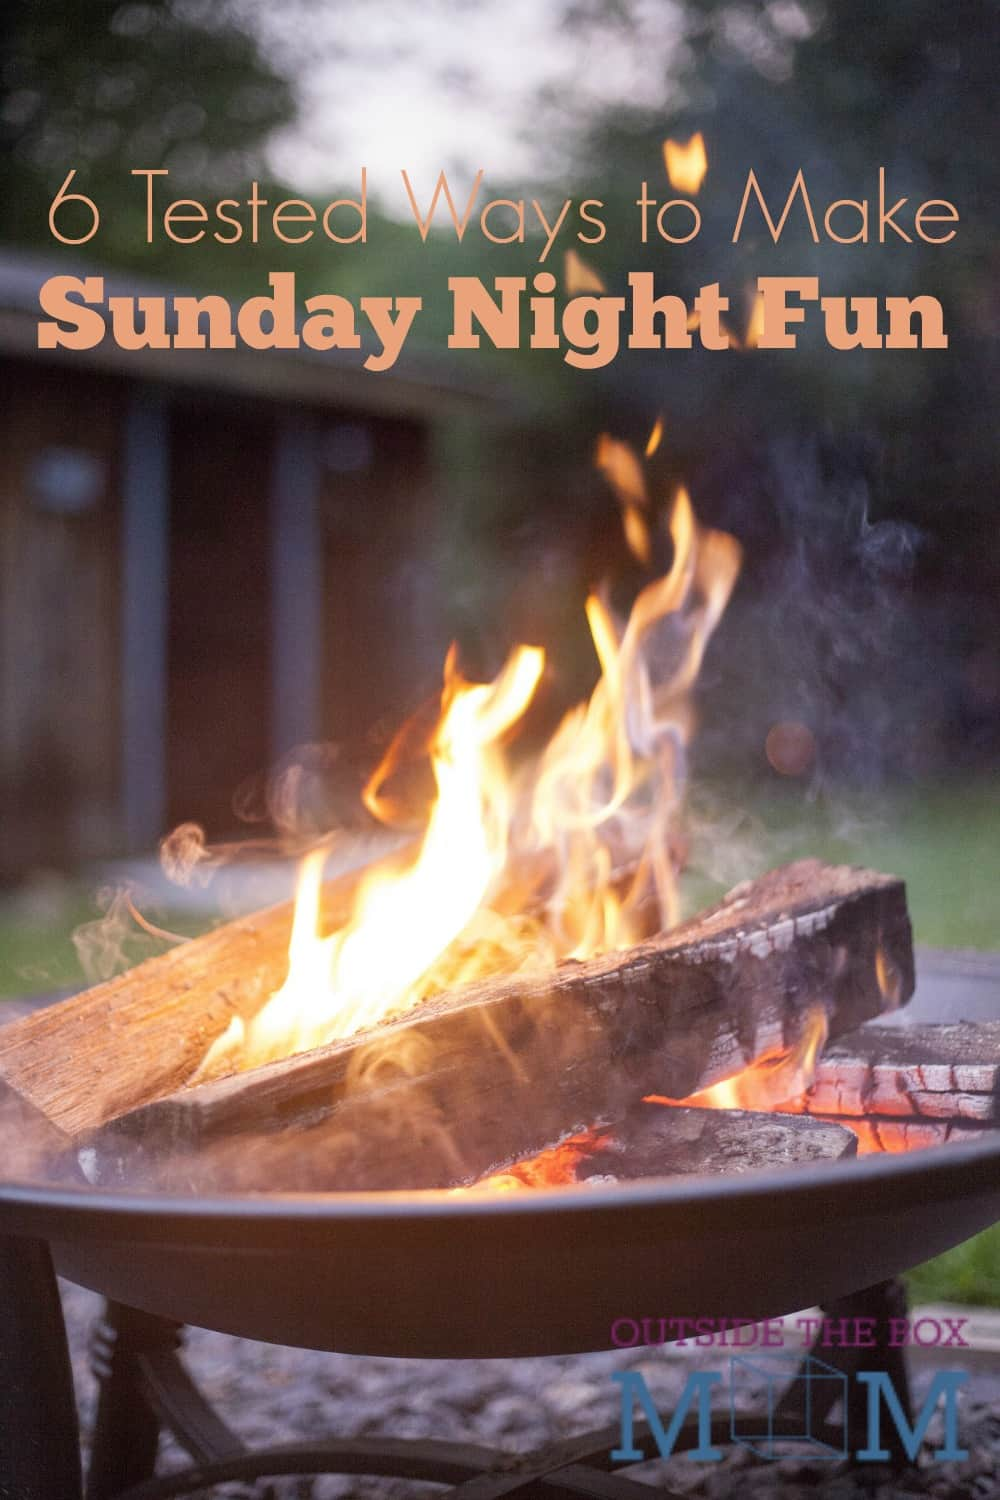 Did you know that Sunday night and fun can go in the same sentence? I've got six easy ways to make it happen!